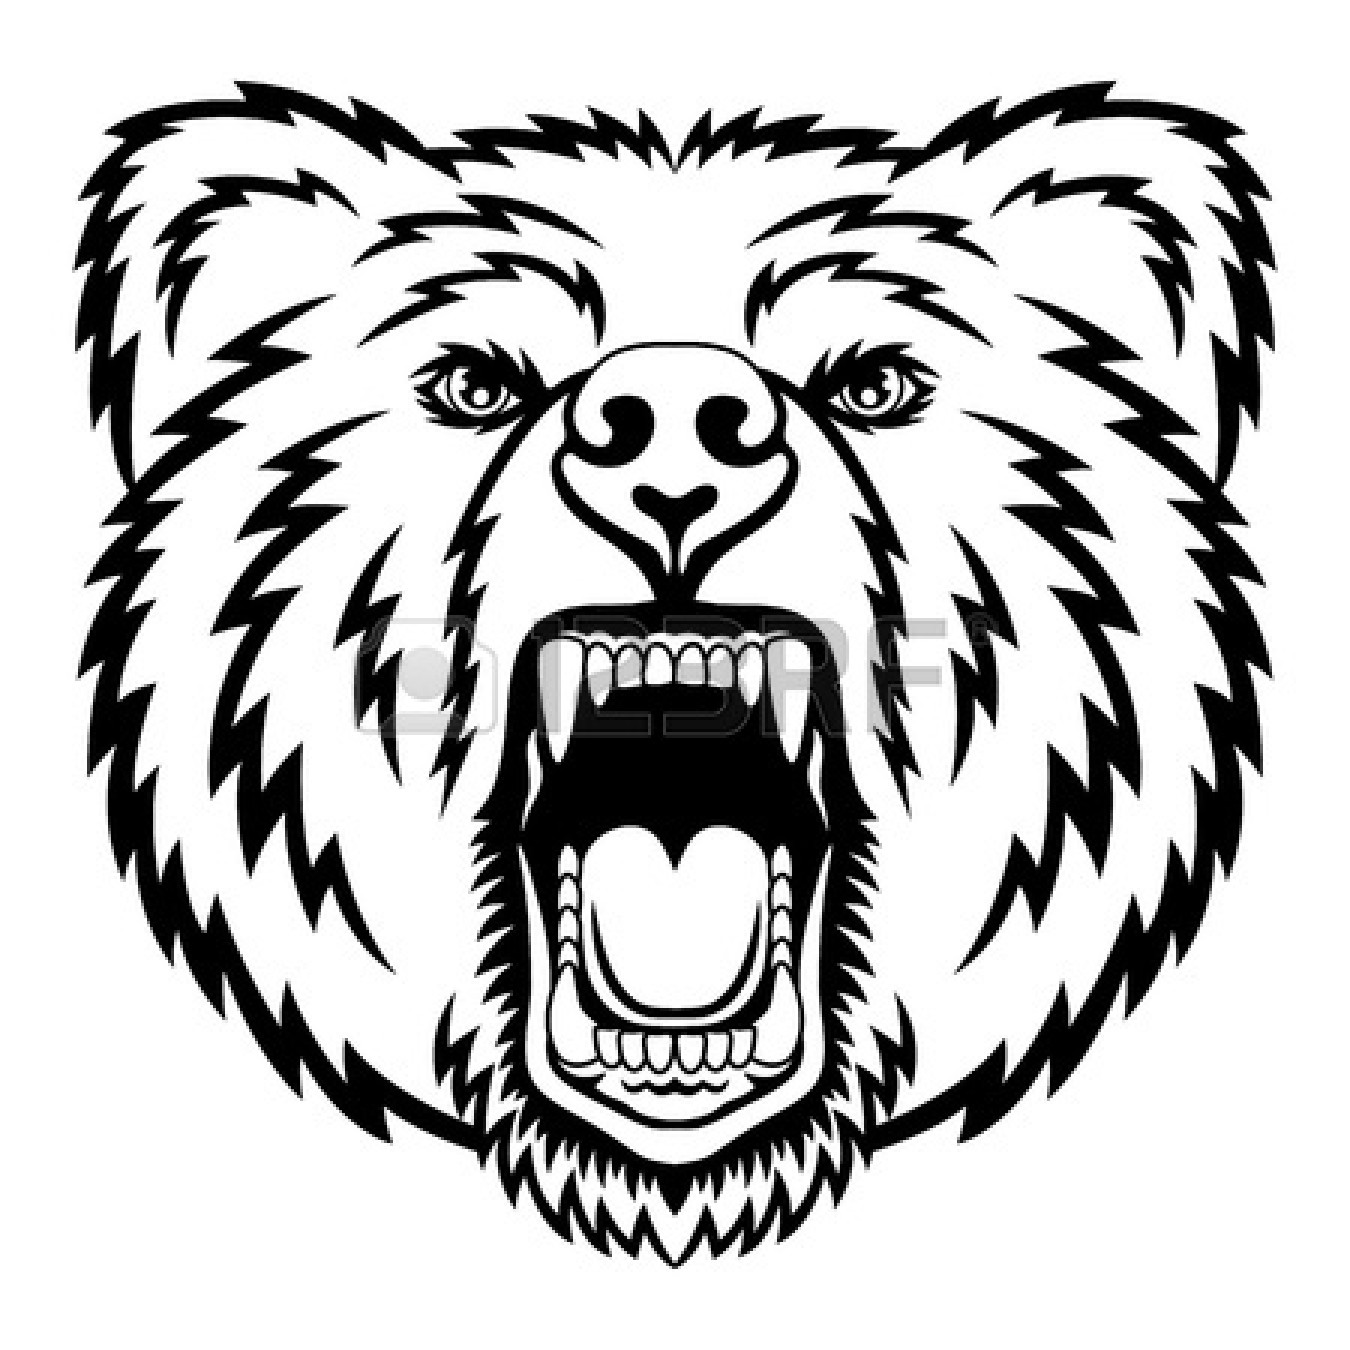 Standing Grizzly Bear Drawings Realistic